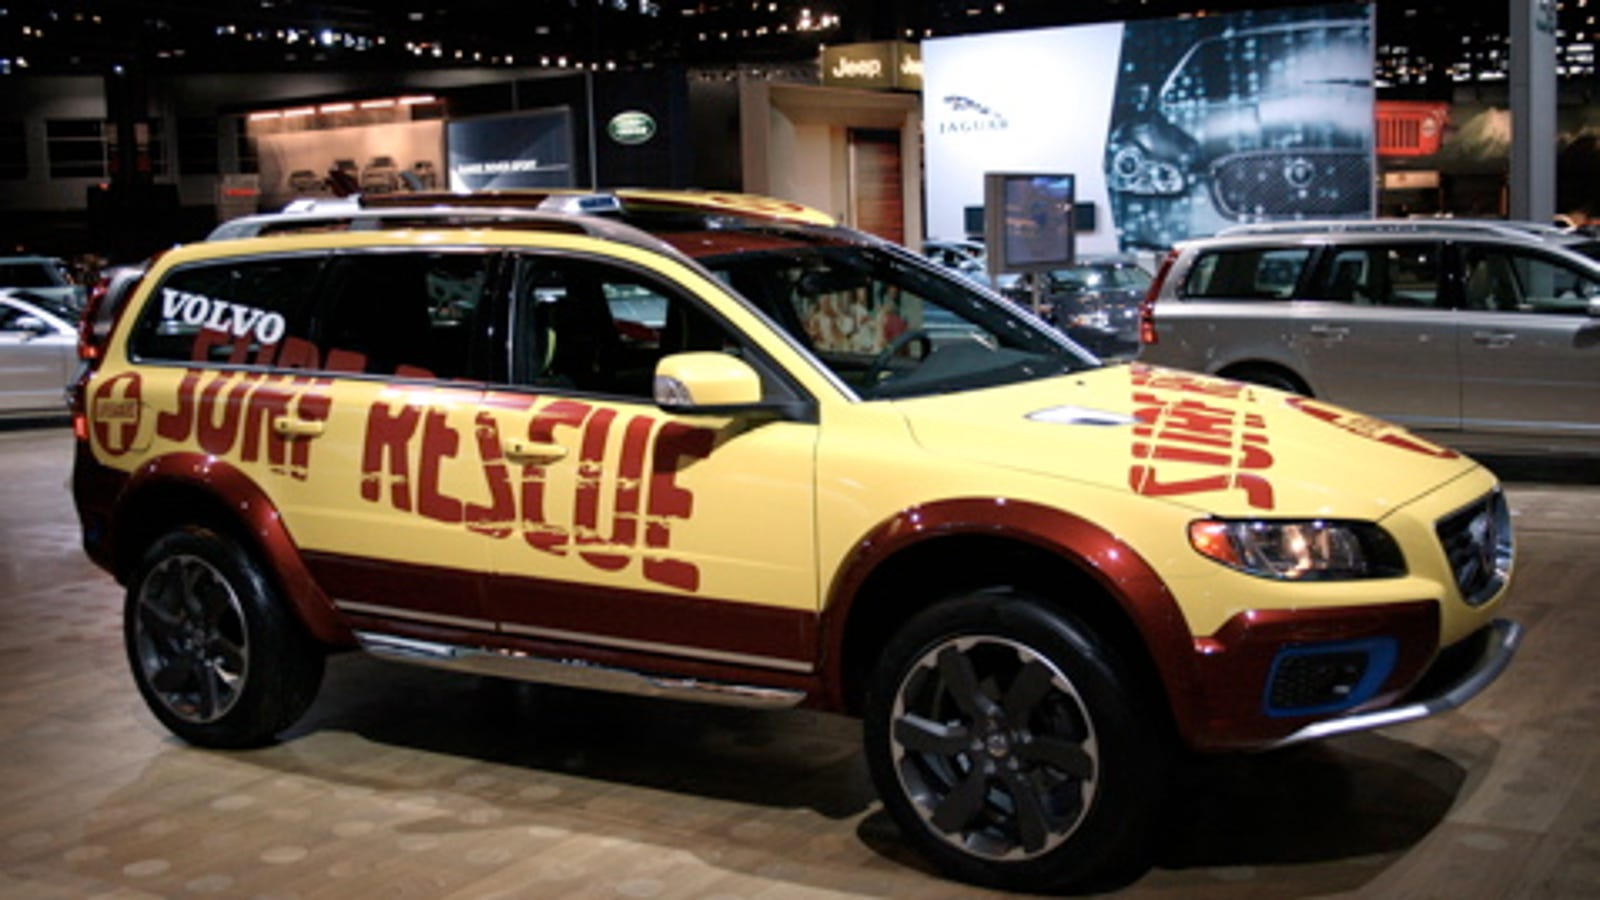 Chicago Auto Show The Volvo Xc70 Sr Surf Rescue Vehicle